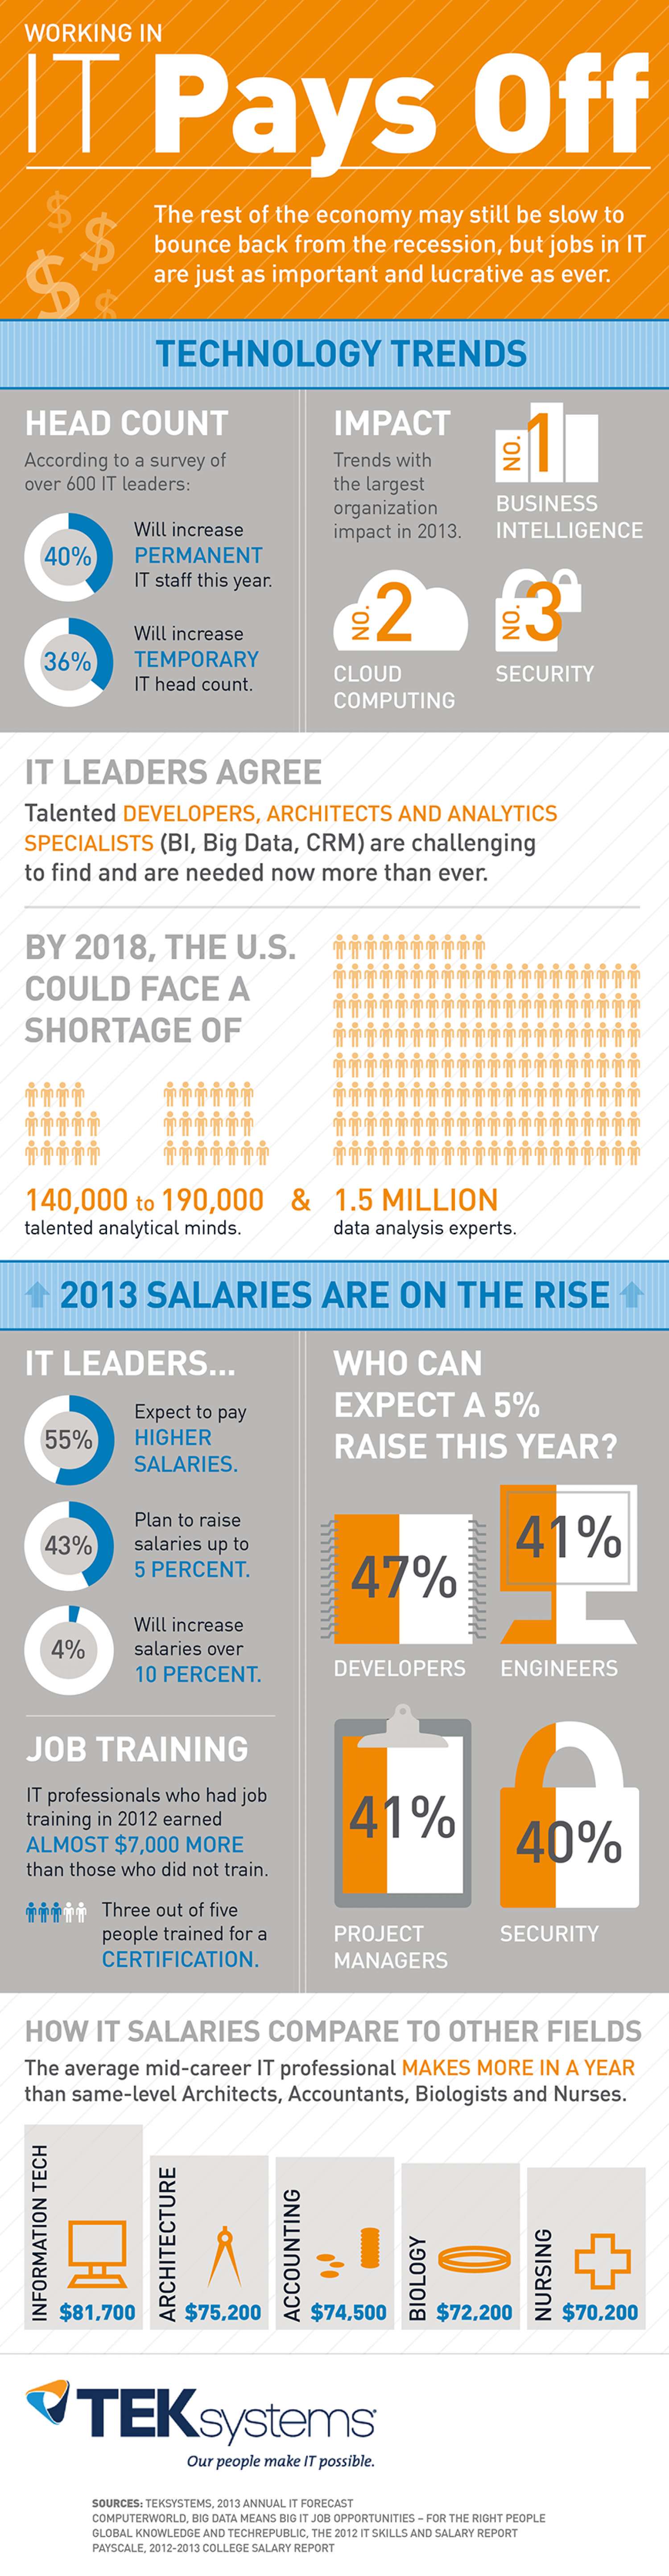 Working in IT Pays Off Infographic